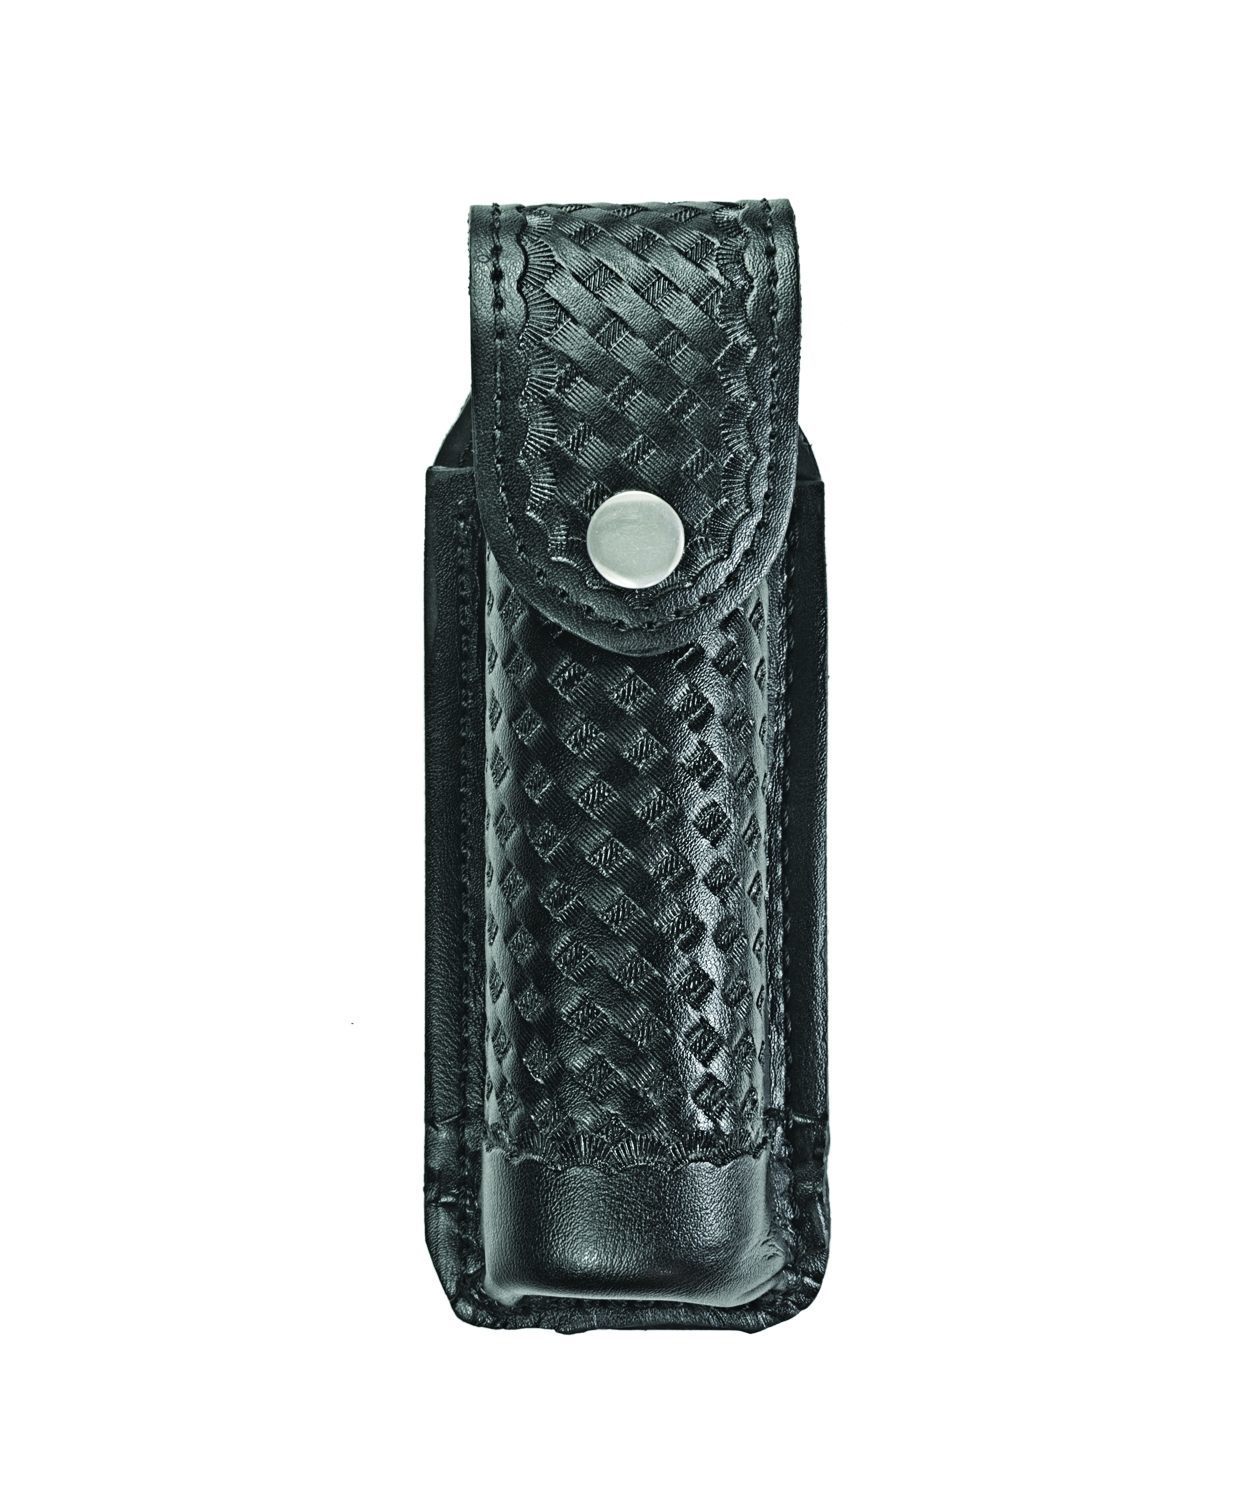 O.C. (Pepper) Spray Case, Medium, MK4, AirTek, BW, Nickel Snap